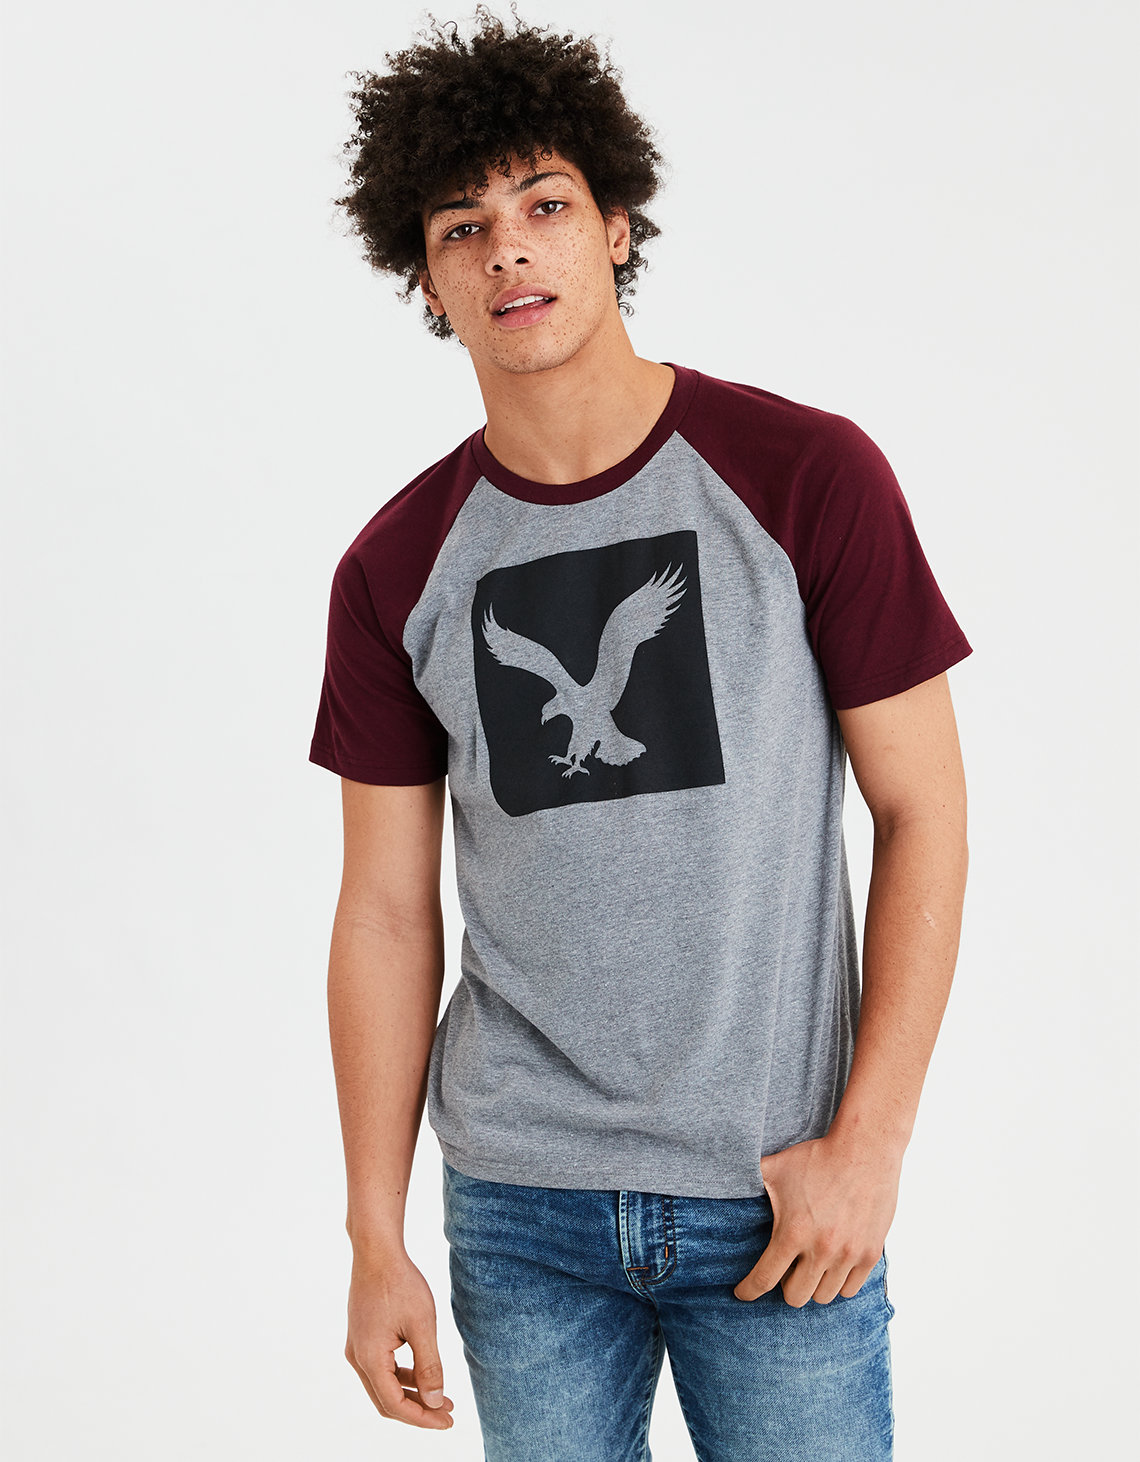 cfca65e8 AE Graphic Tee, Burgundy | American Eagle Outfitters